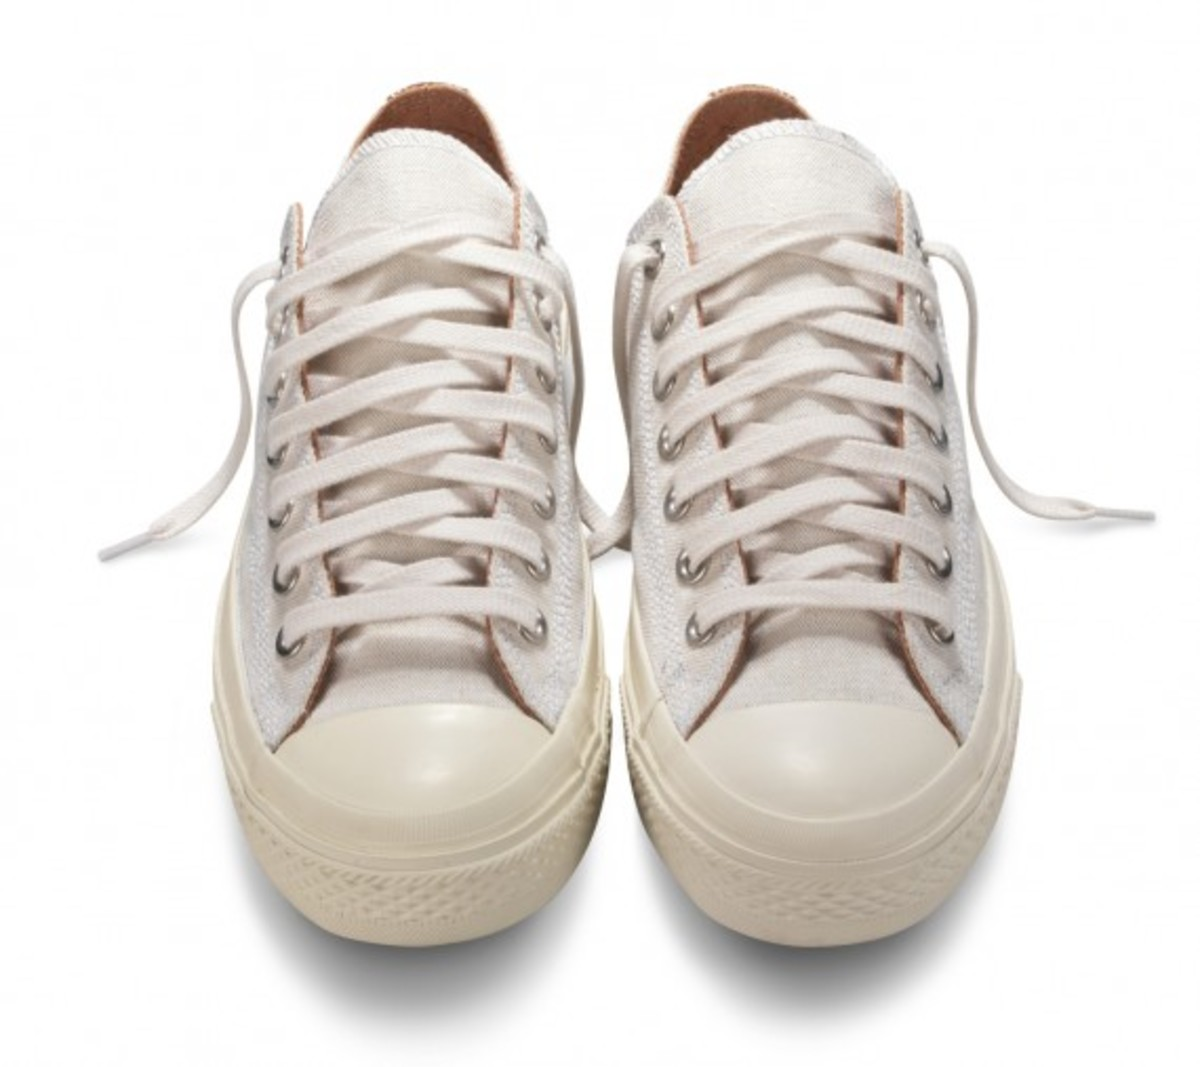 the-hideout-converse-chuck-taylor-all-star-ox-08